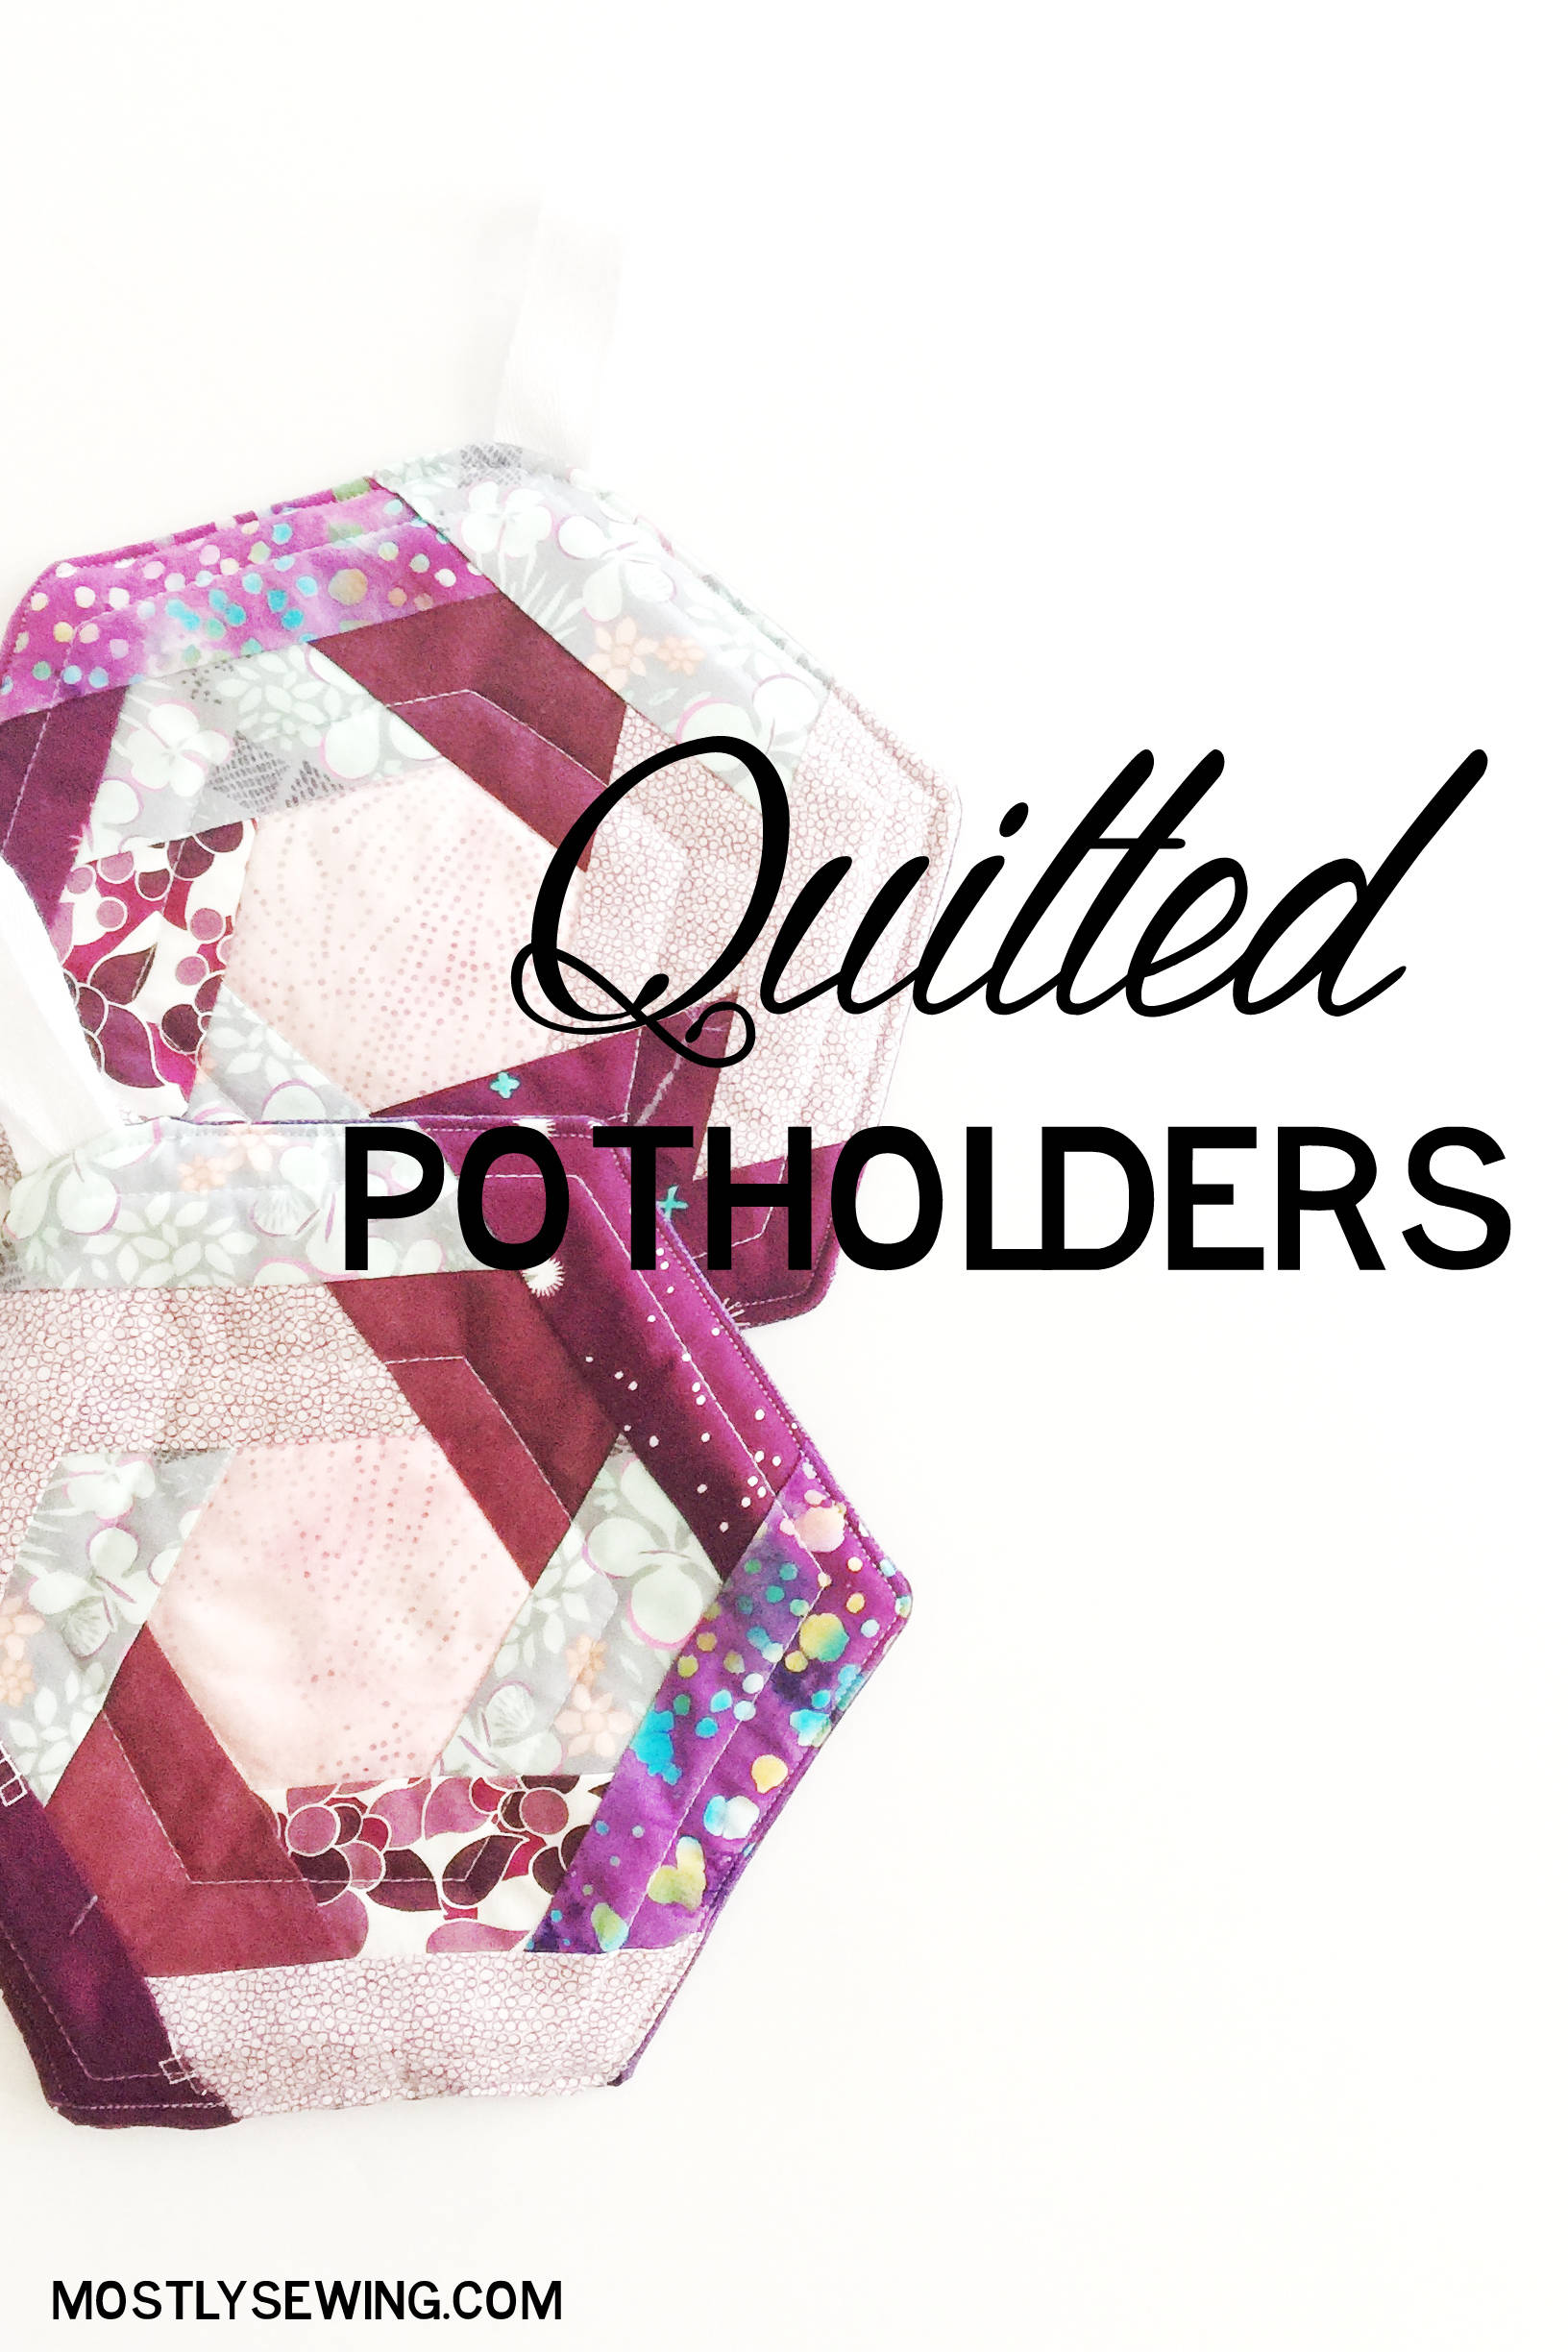 Quilted Potholders: I love the hexagon shape of these potholders and using the log cabin technique to construct! So fun!